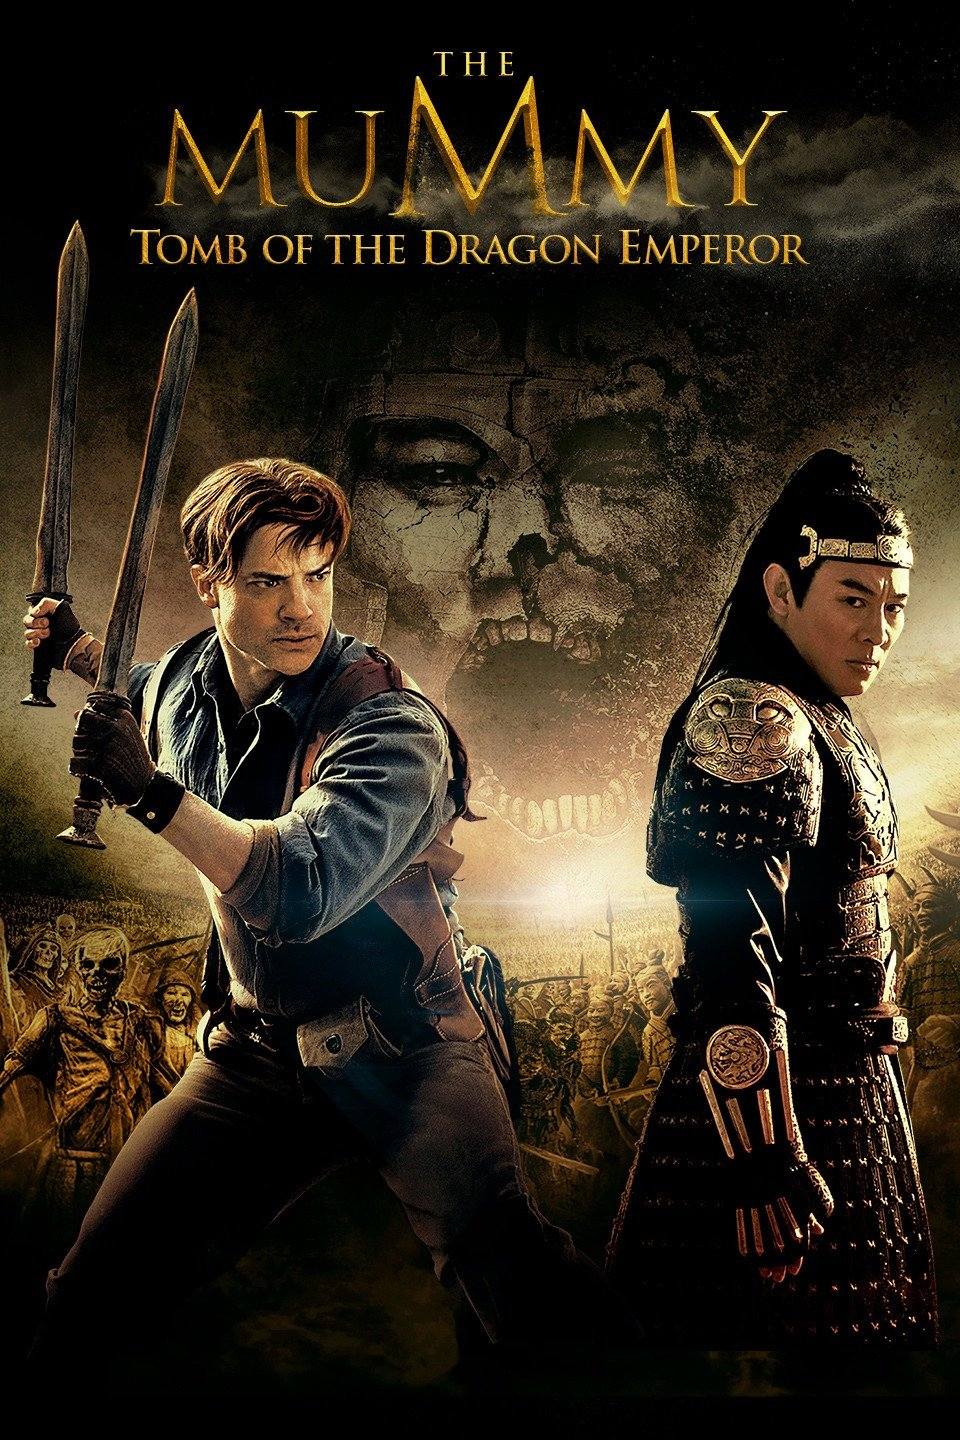 دانلود فیلم The Mummy Tomb Of The Dragon Emperor 2008